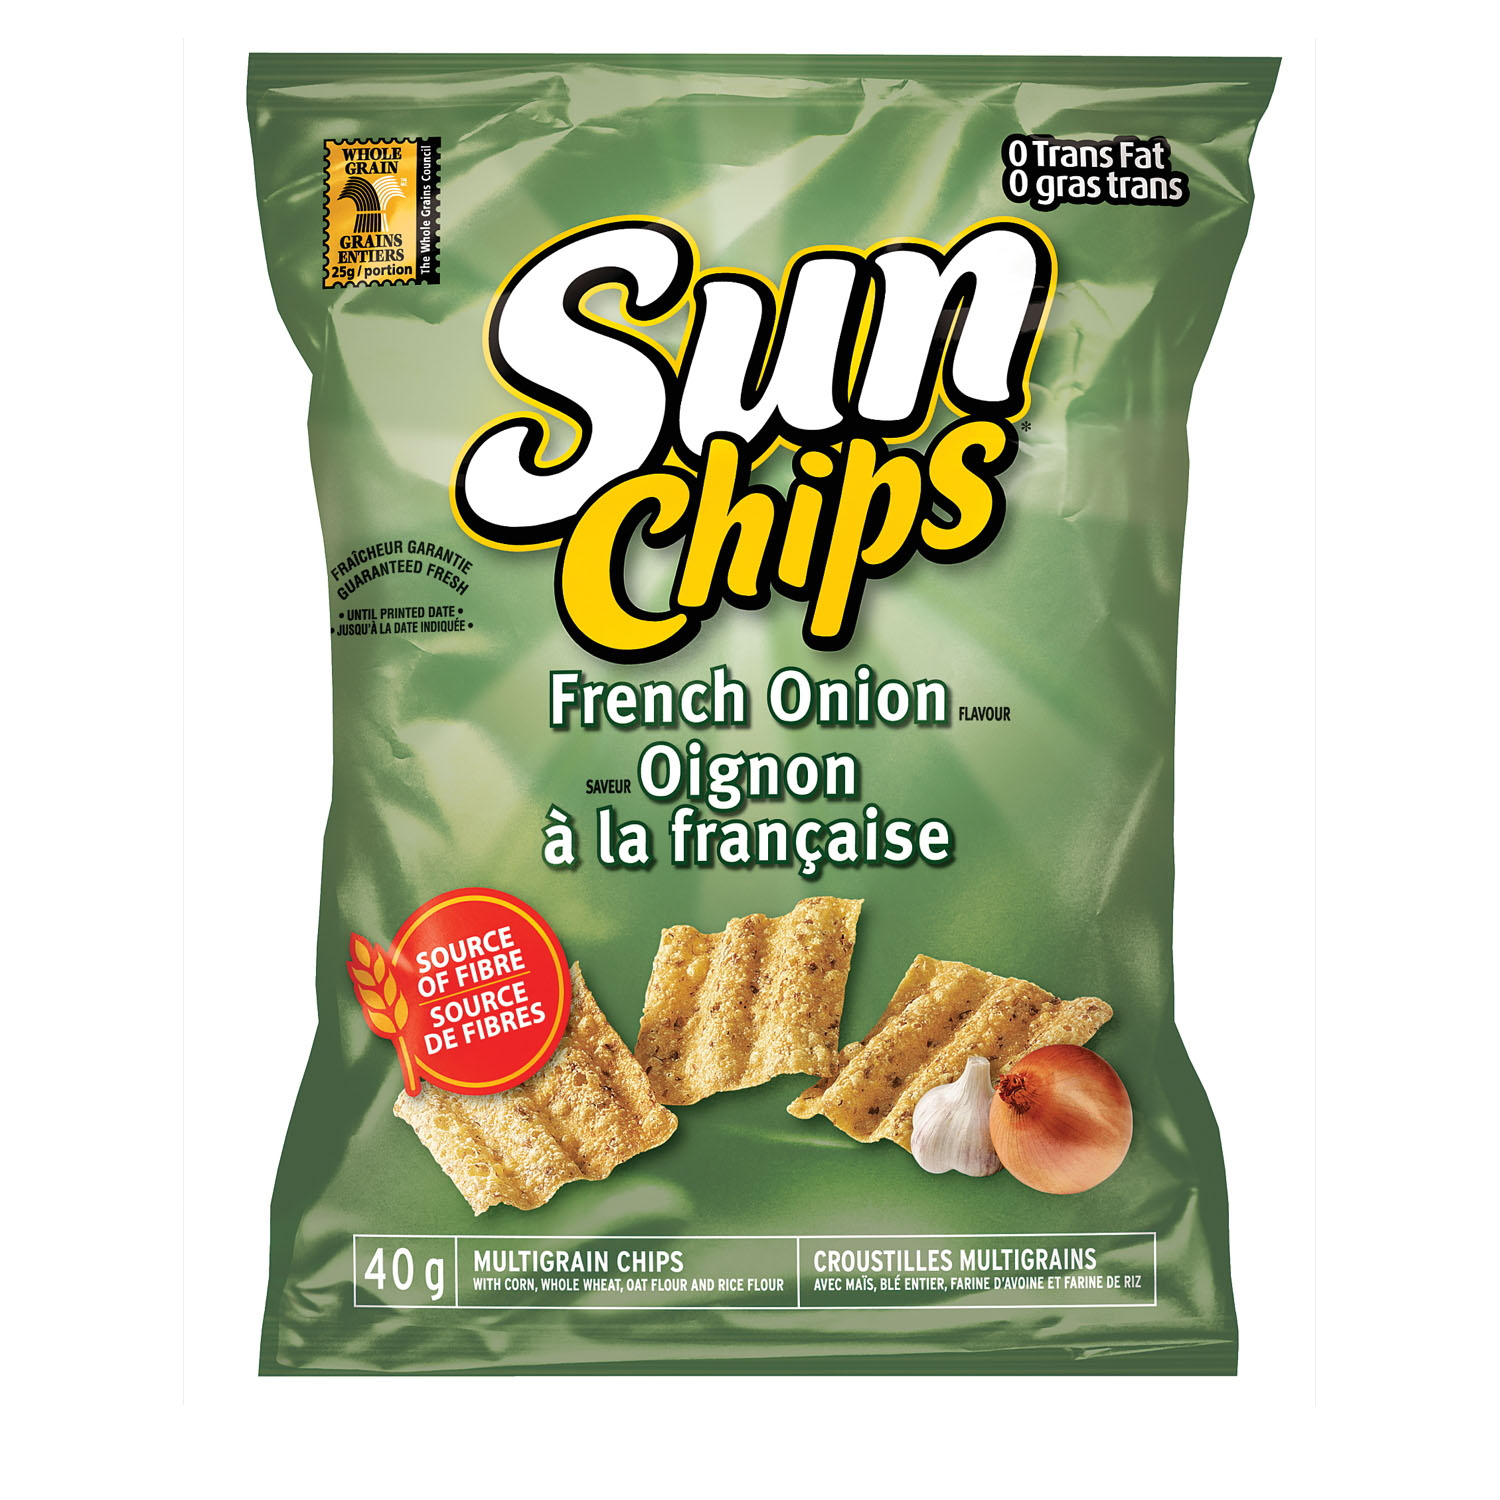 sun chips essay Frito lay sun chips case study essay furthermore, doritos and ruffles are the only snack chips with $1 billion in retail sales in the world 2.